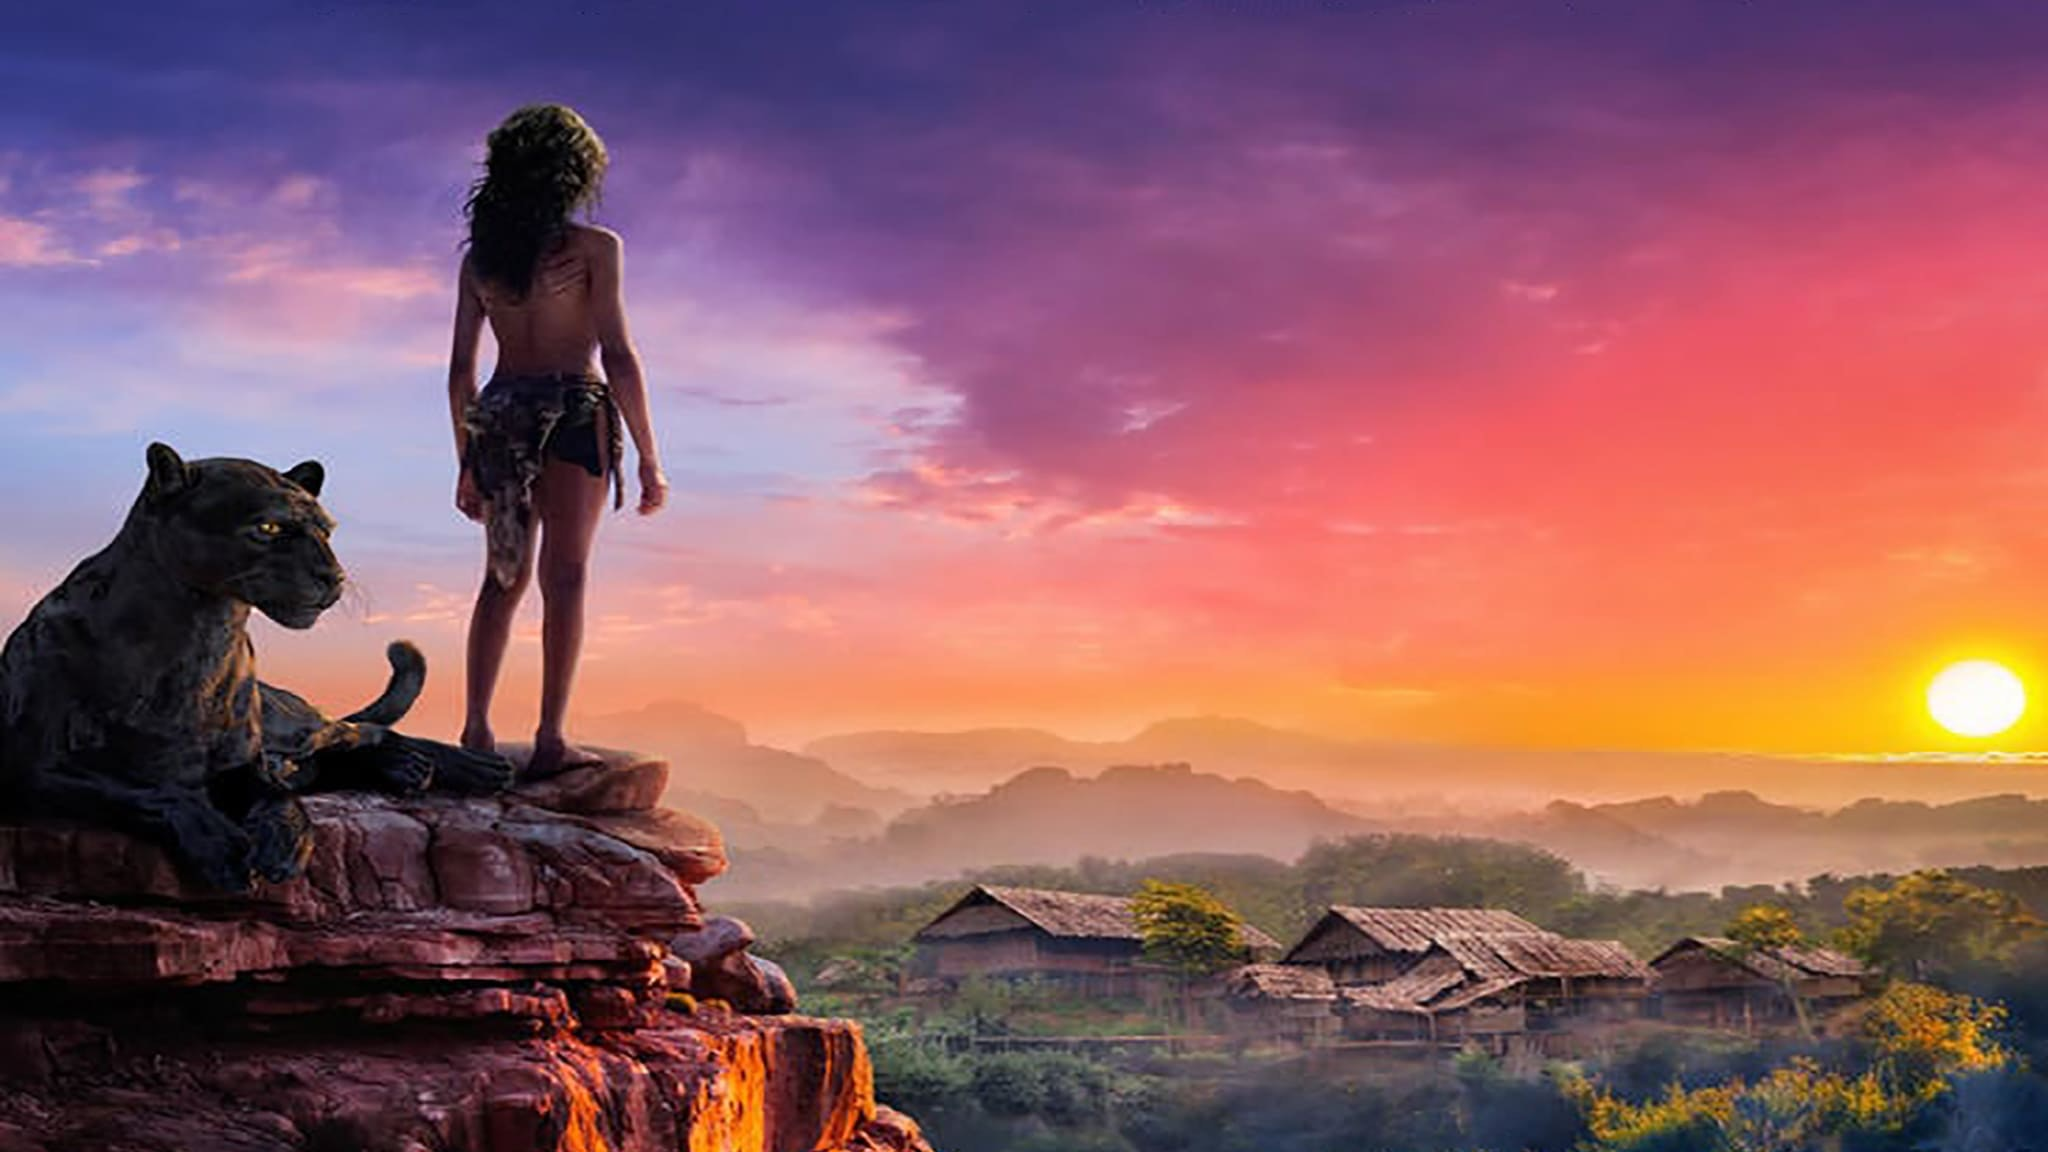 The Jungle Book Songs Pagalworld